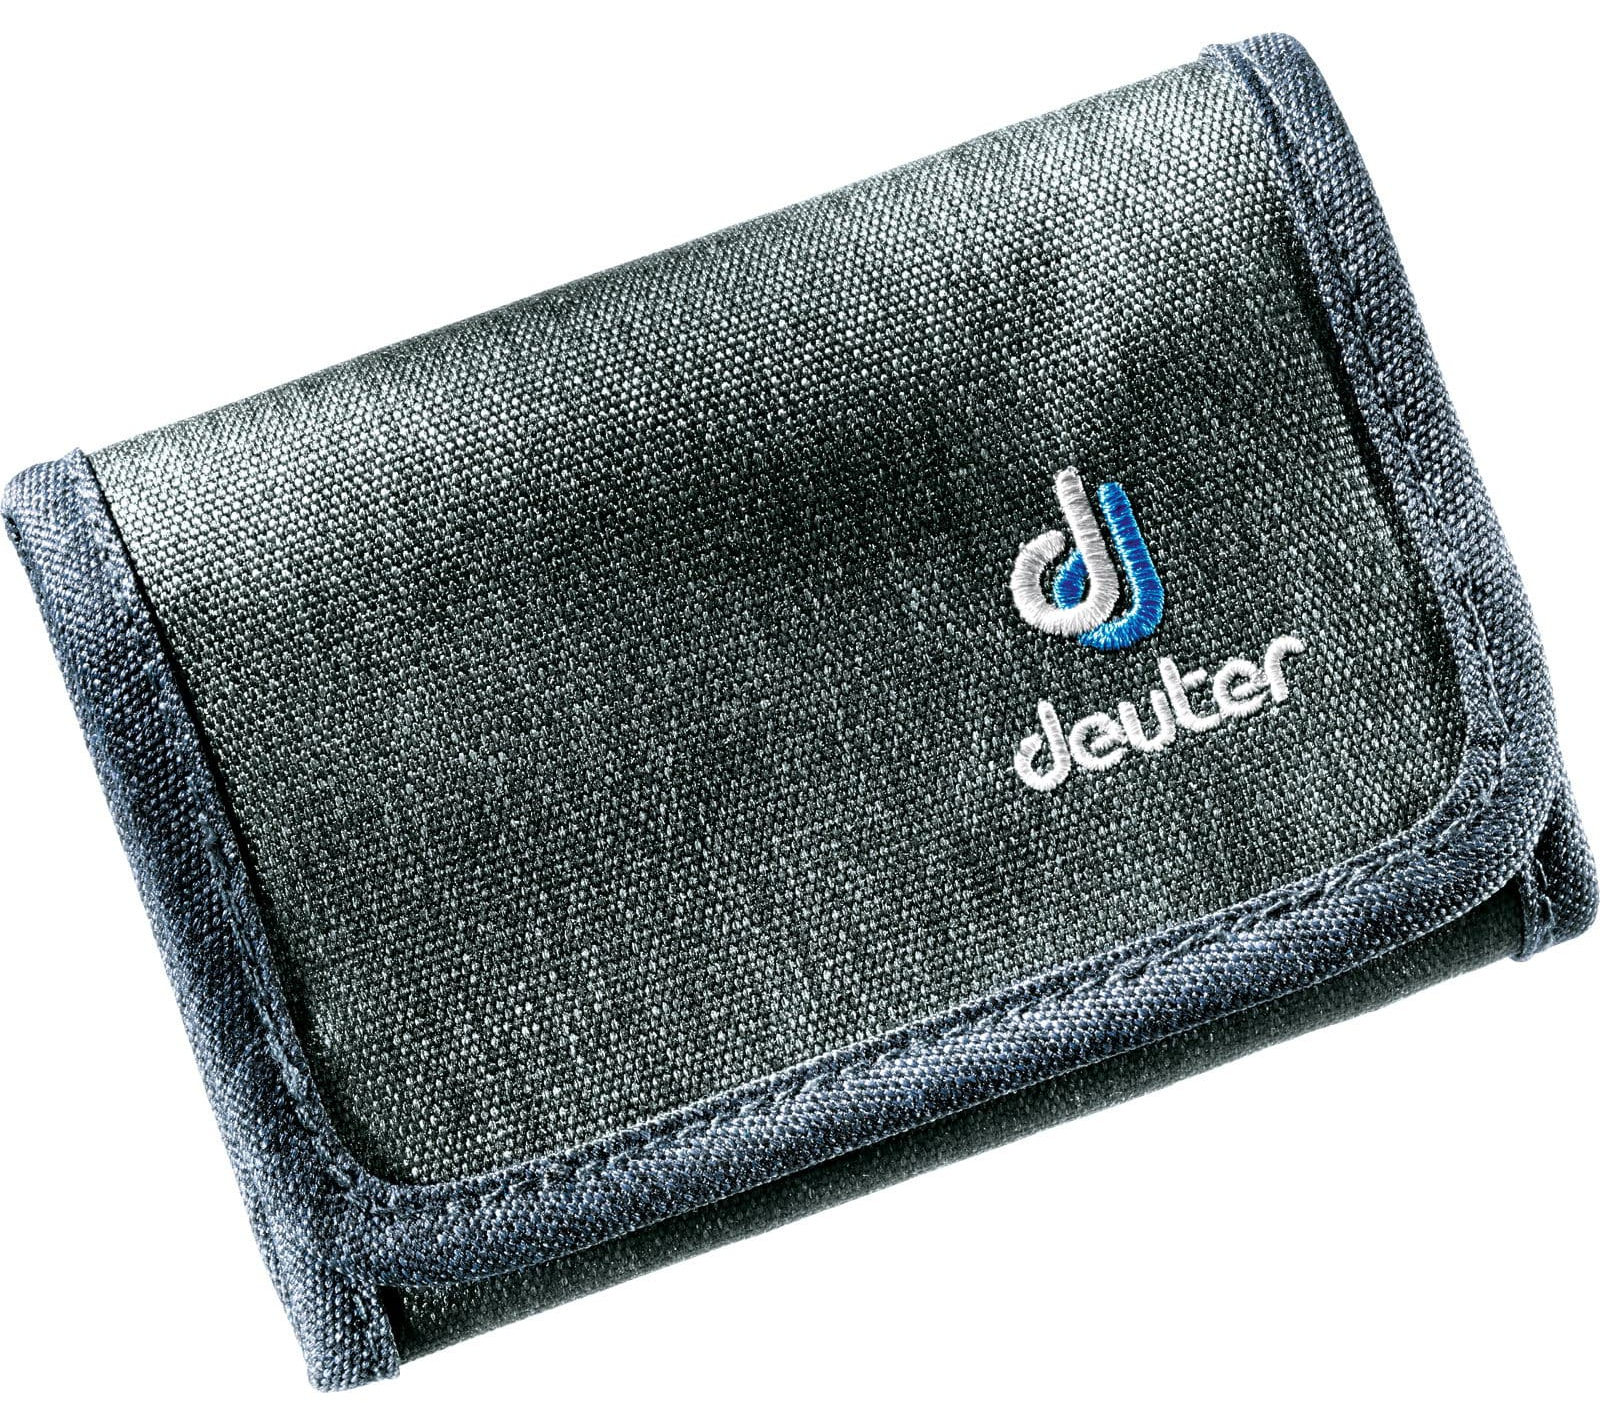 Deuter ' Travel Wallet RFID Block' Geldbörse dresscode